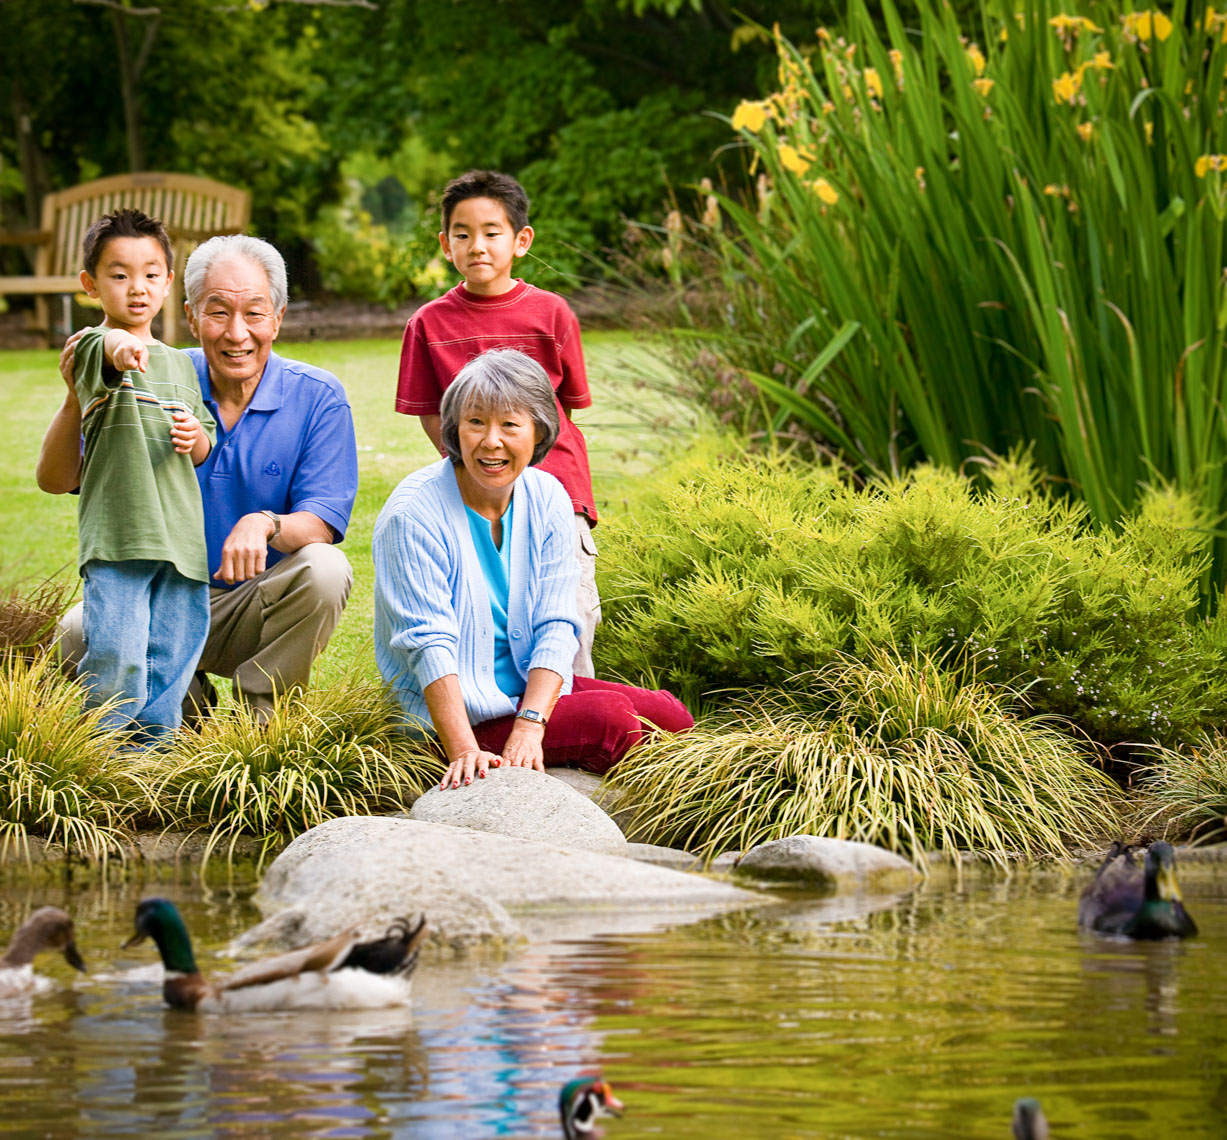 Los Angeles Photographer | Dana Hursey Photography | Kid Photography | Asian Grandparents